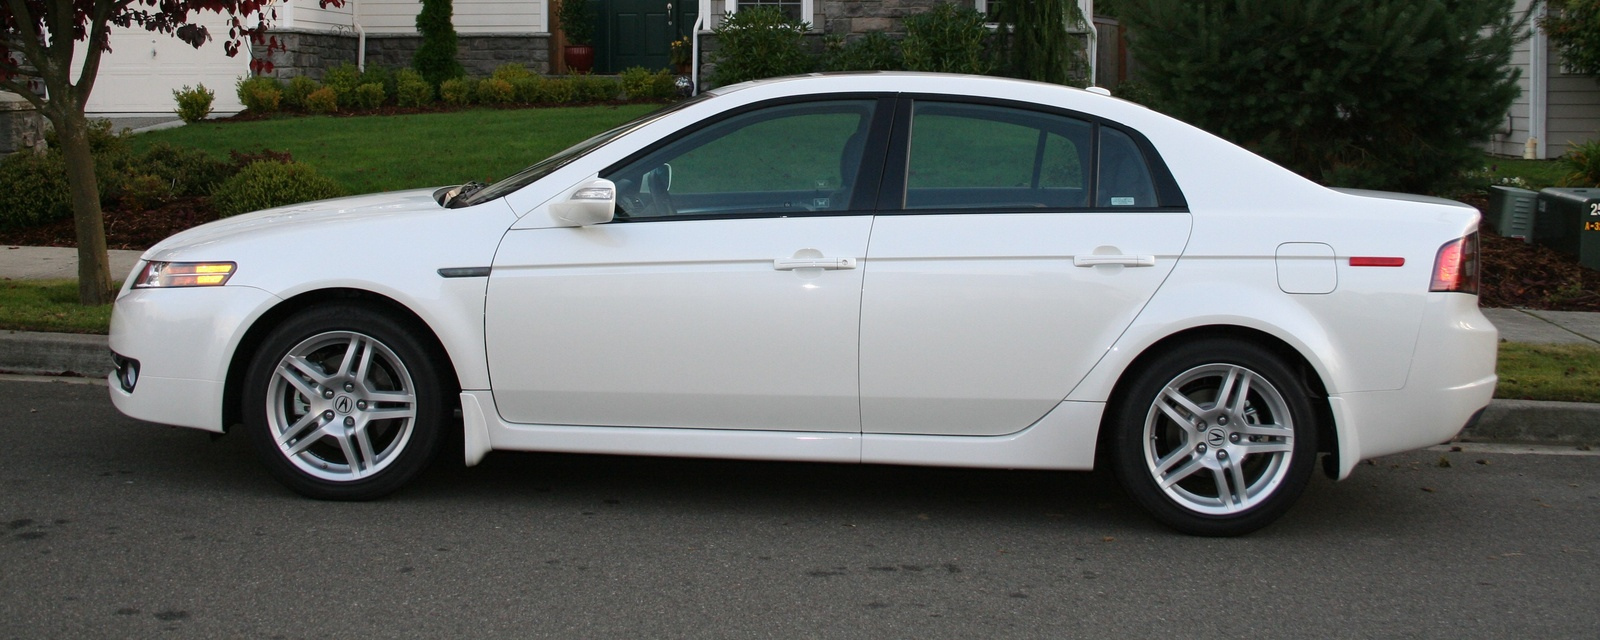 2008 Acura Tl Pictures C8324 pi36447402 on 1997 acura cl interior